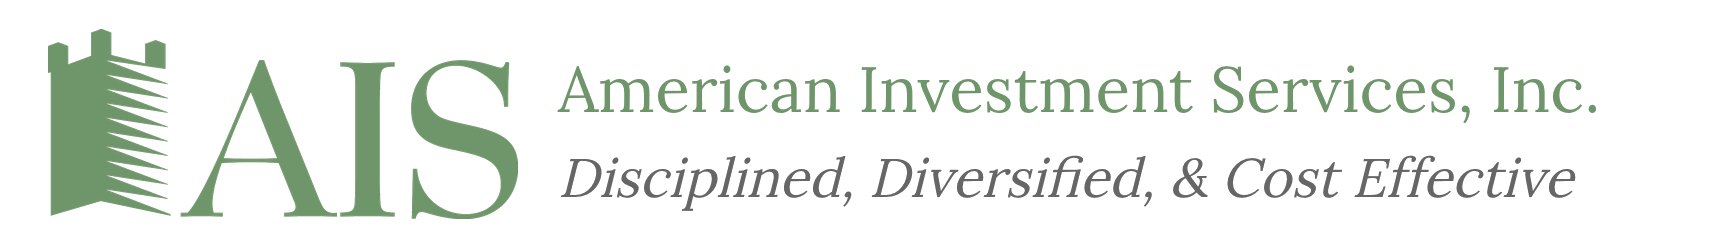 American Investment Services, Inc.